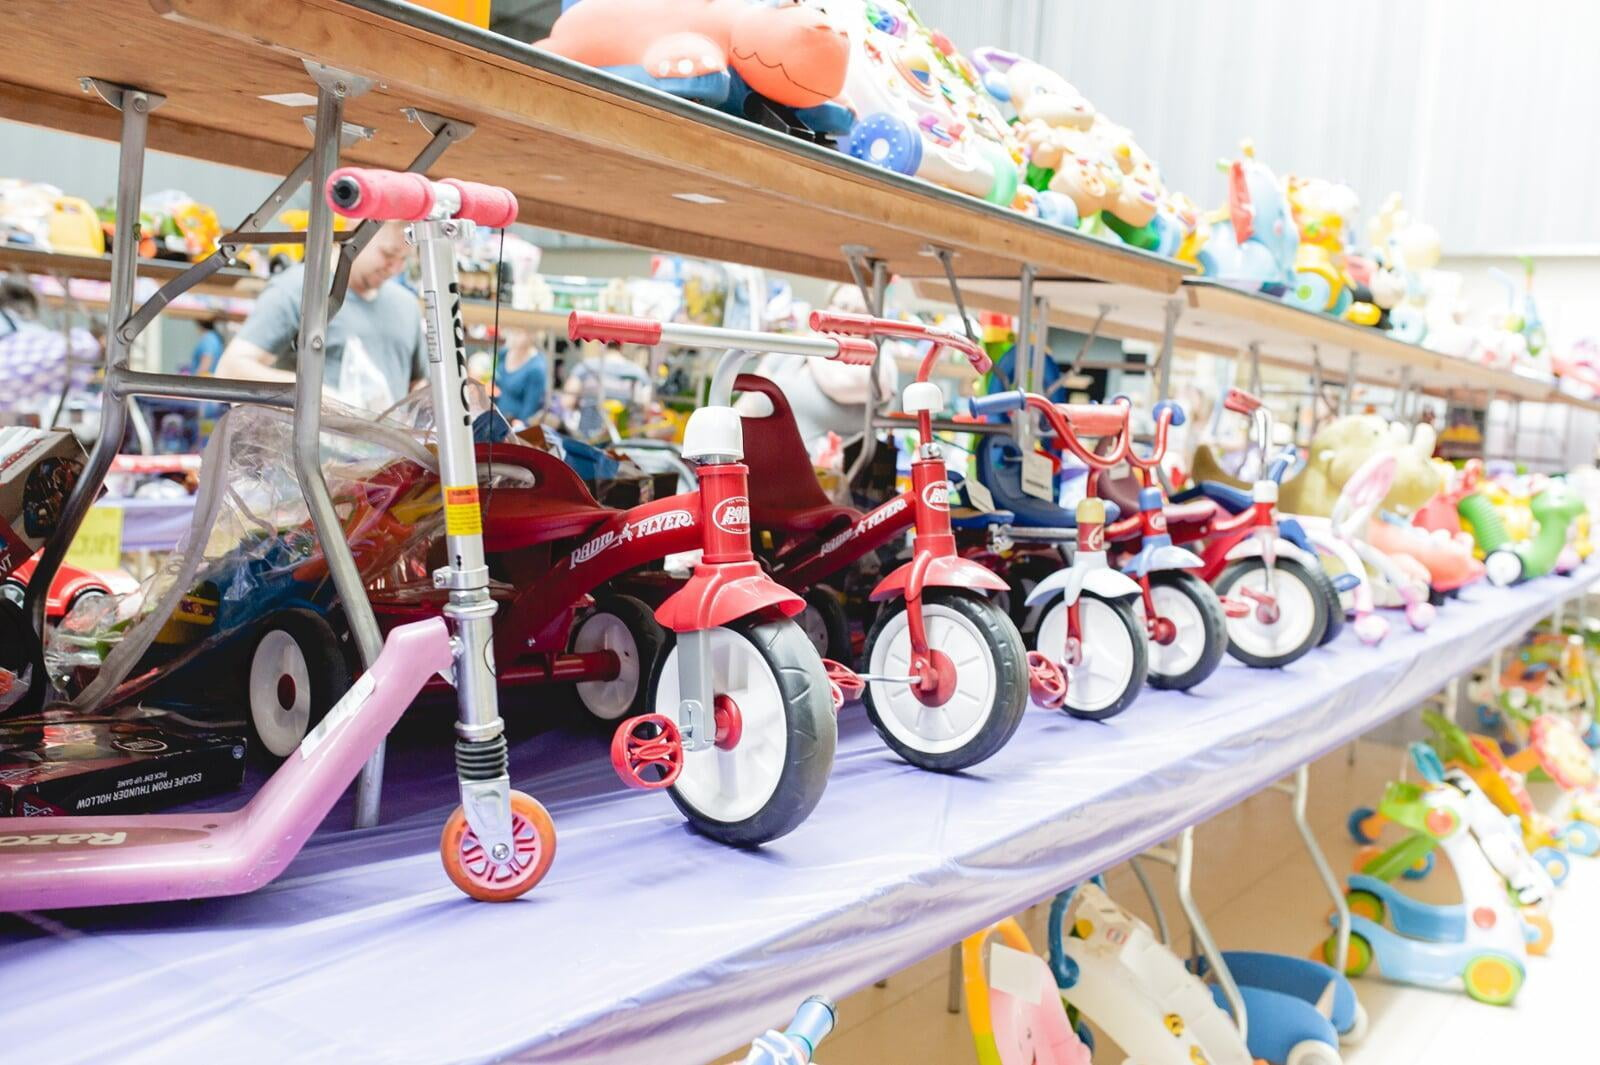 Tricycles, scooters and toys lined up on a table waiting for shoppers to attend the sale.